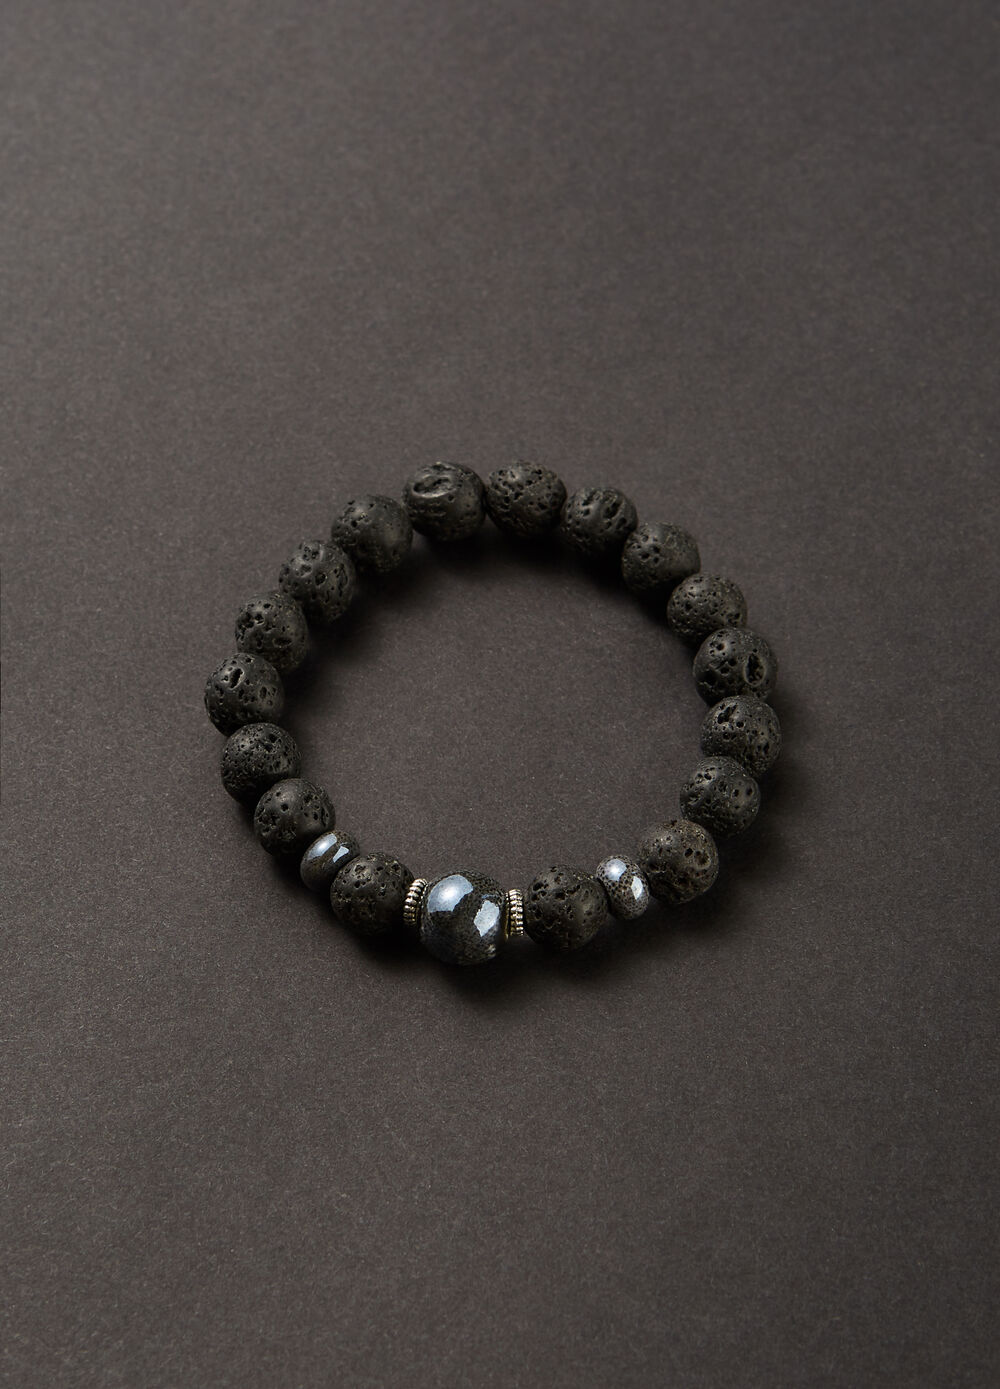 Bracelet with engraved stone beads